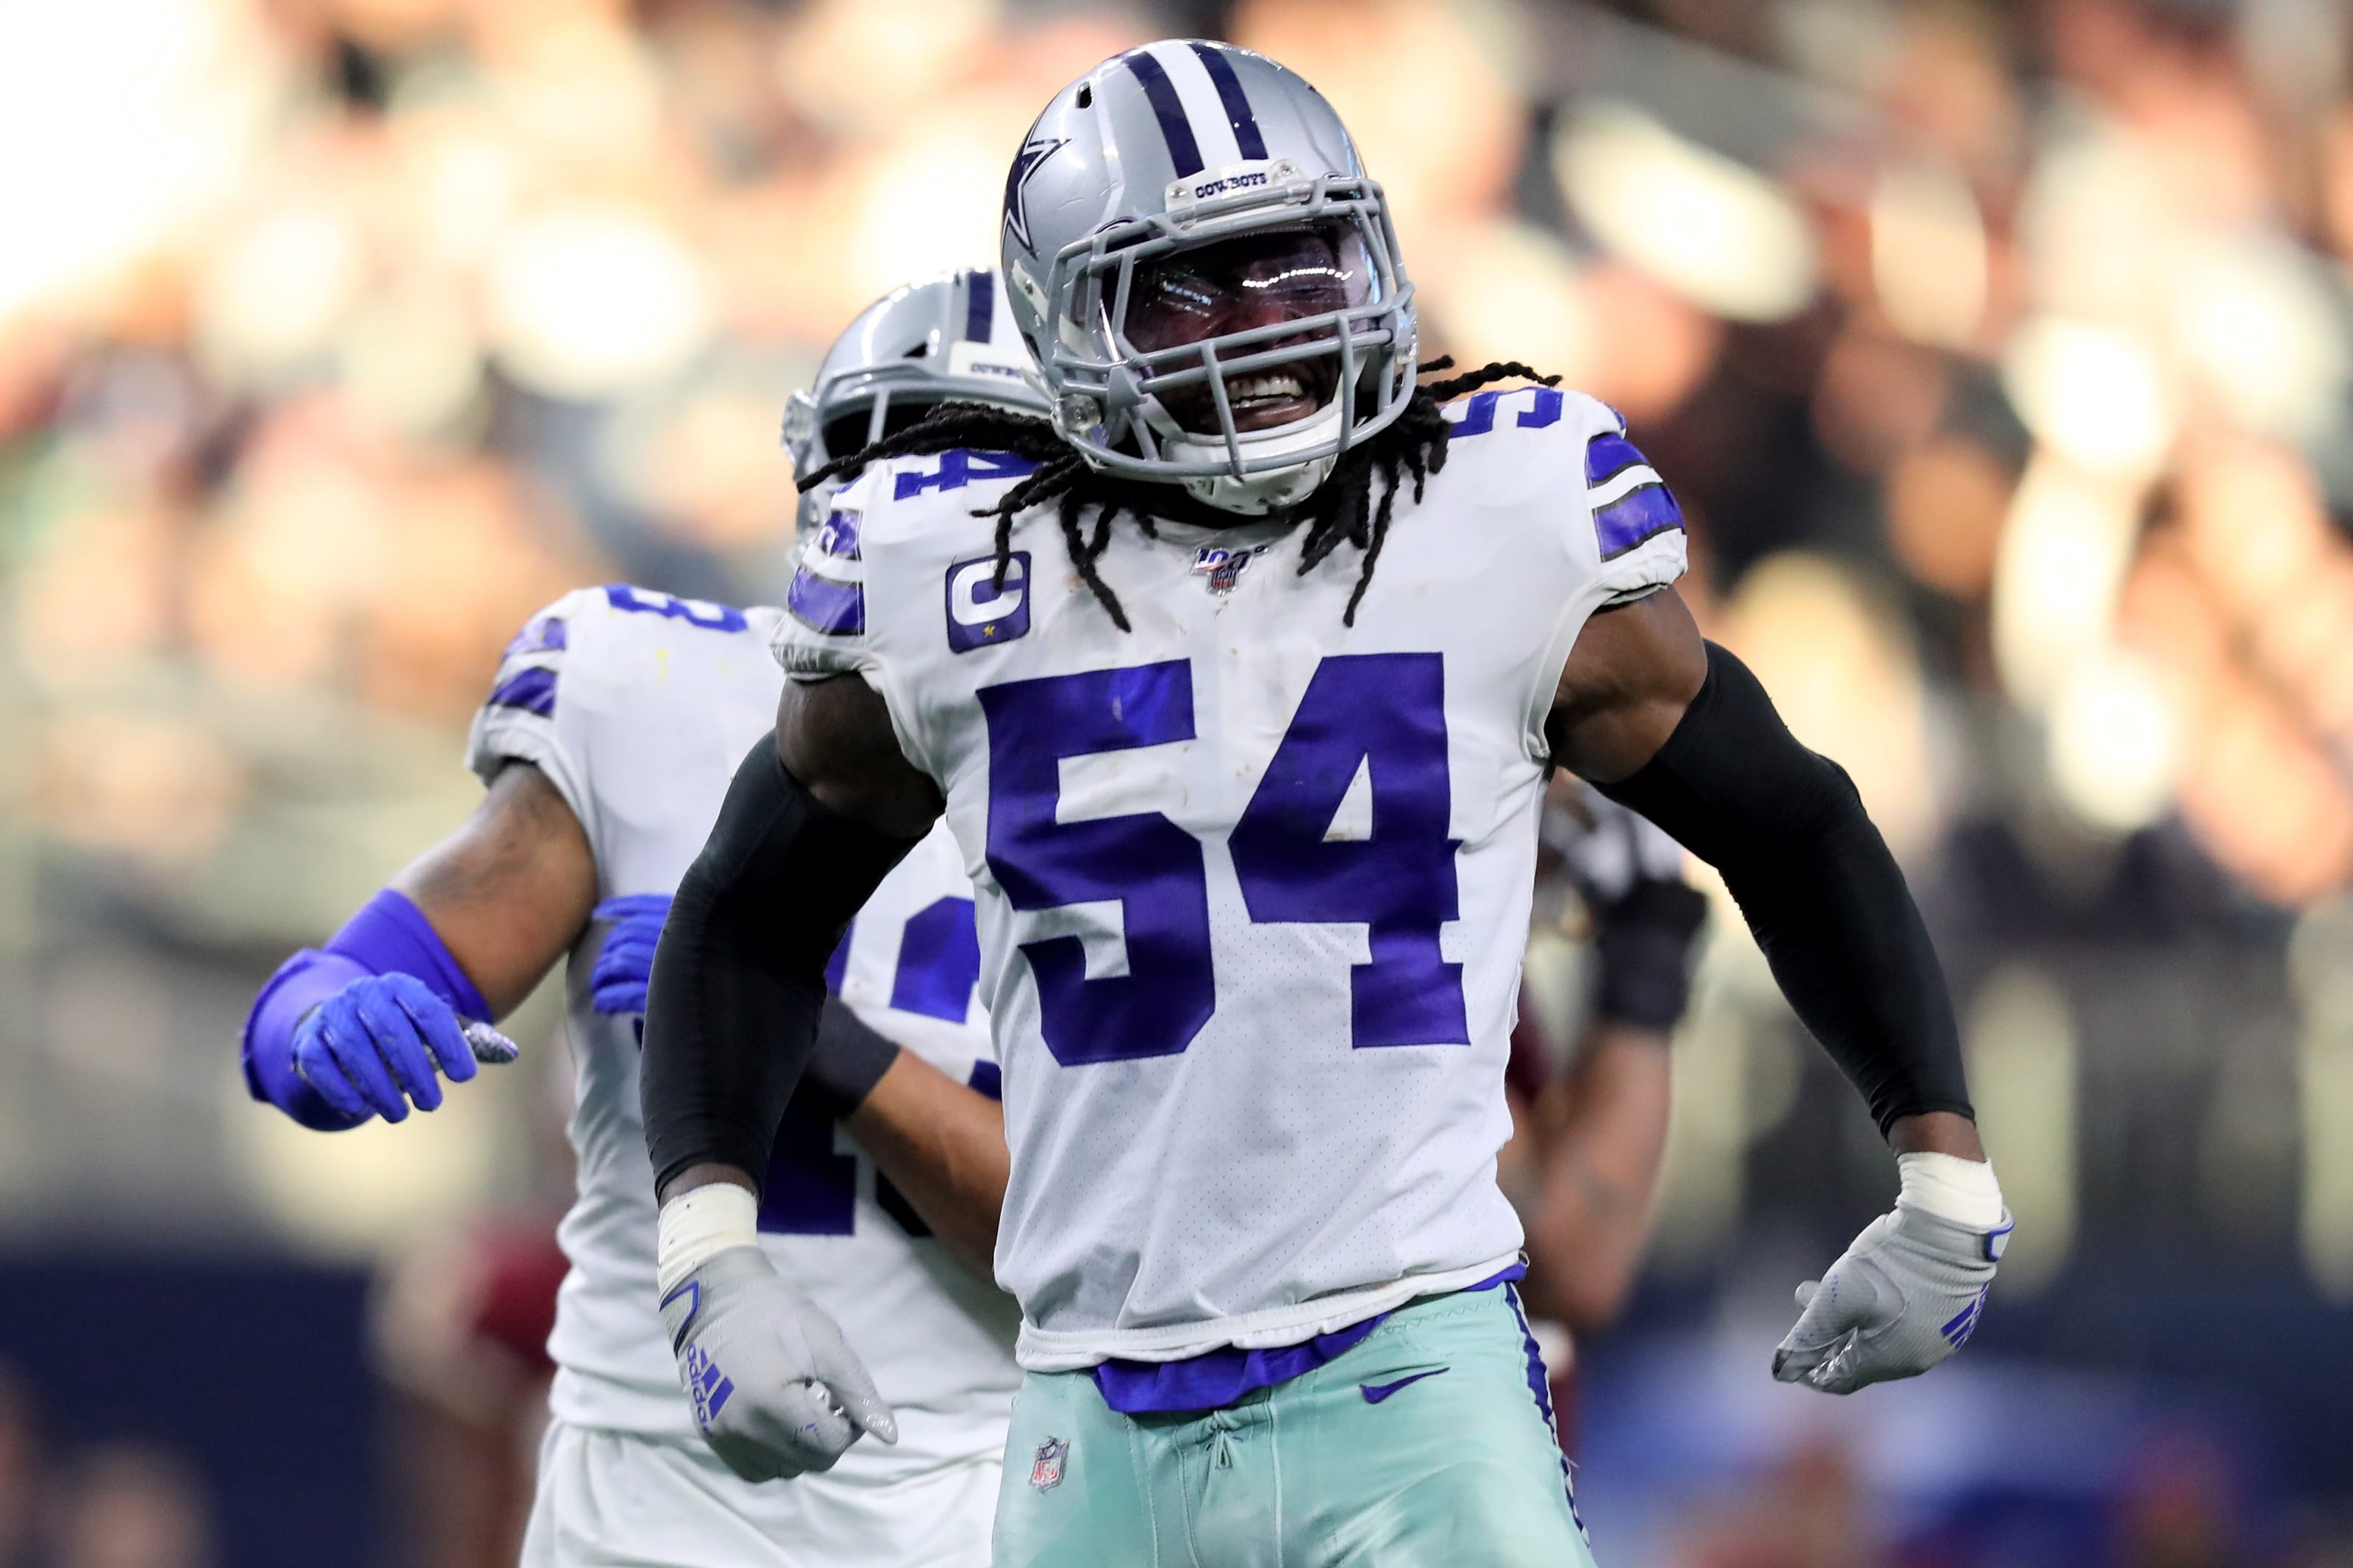 Jaylon Smith, Dallas Cowboys